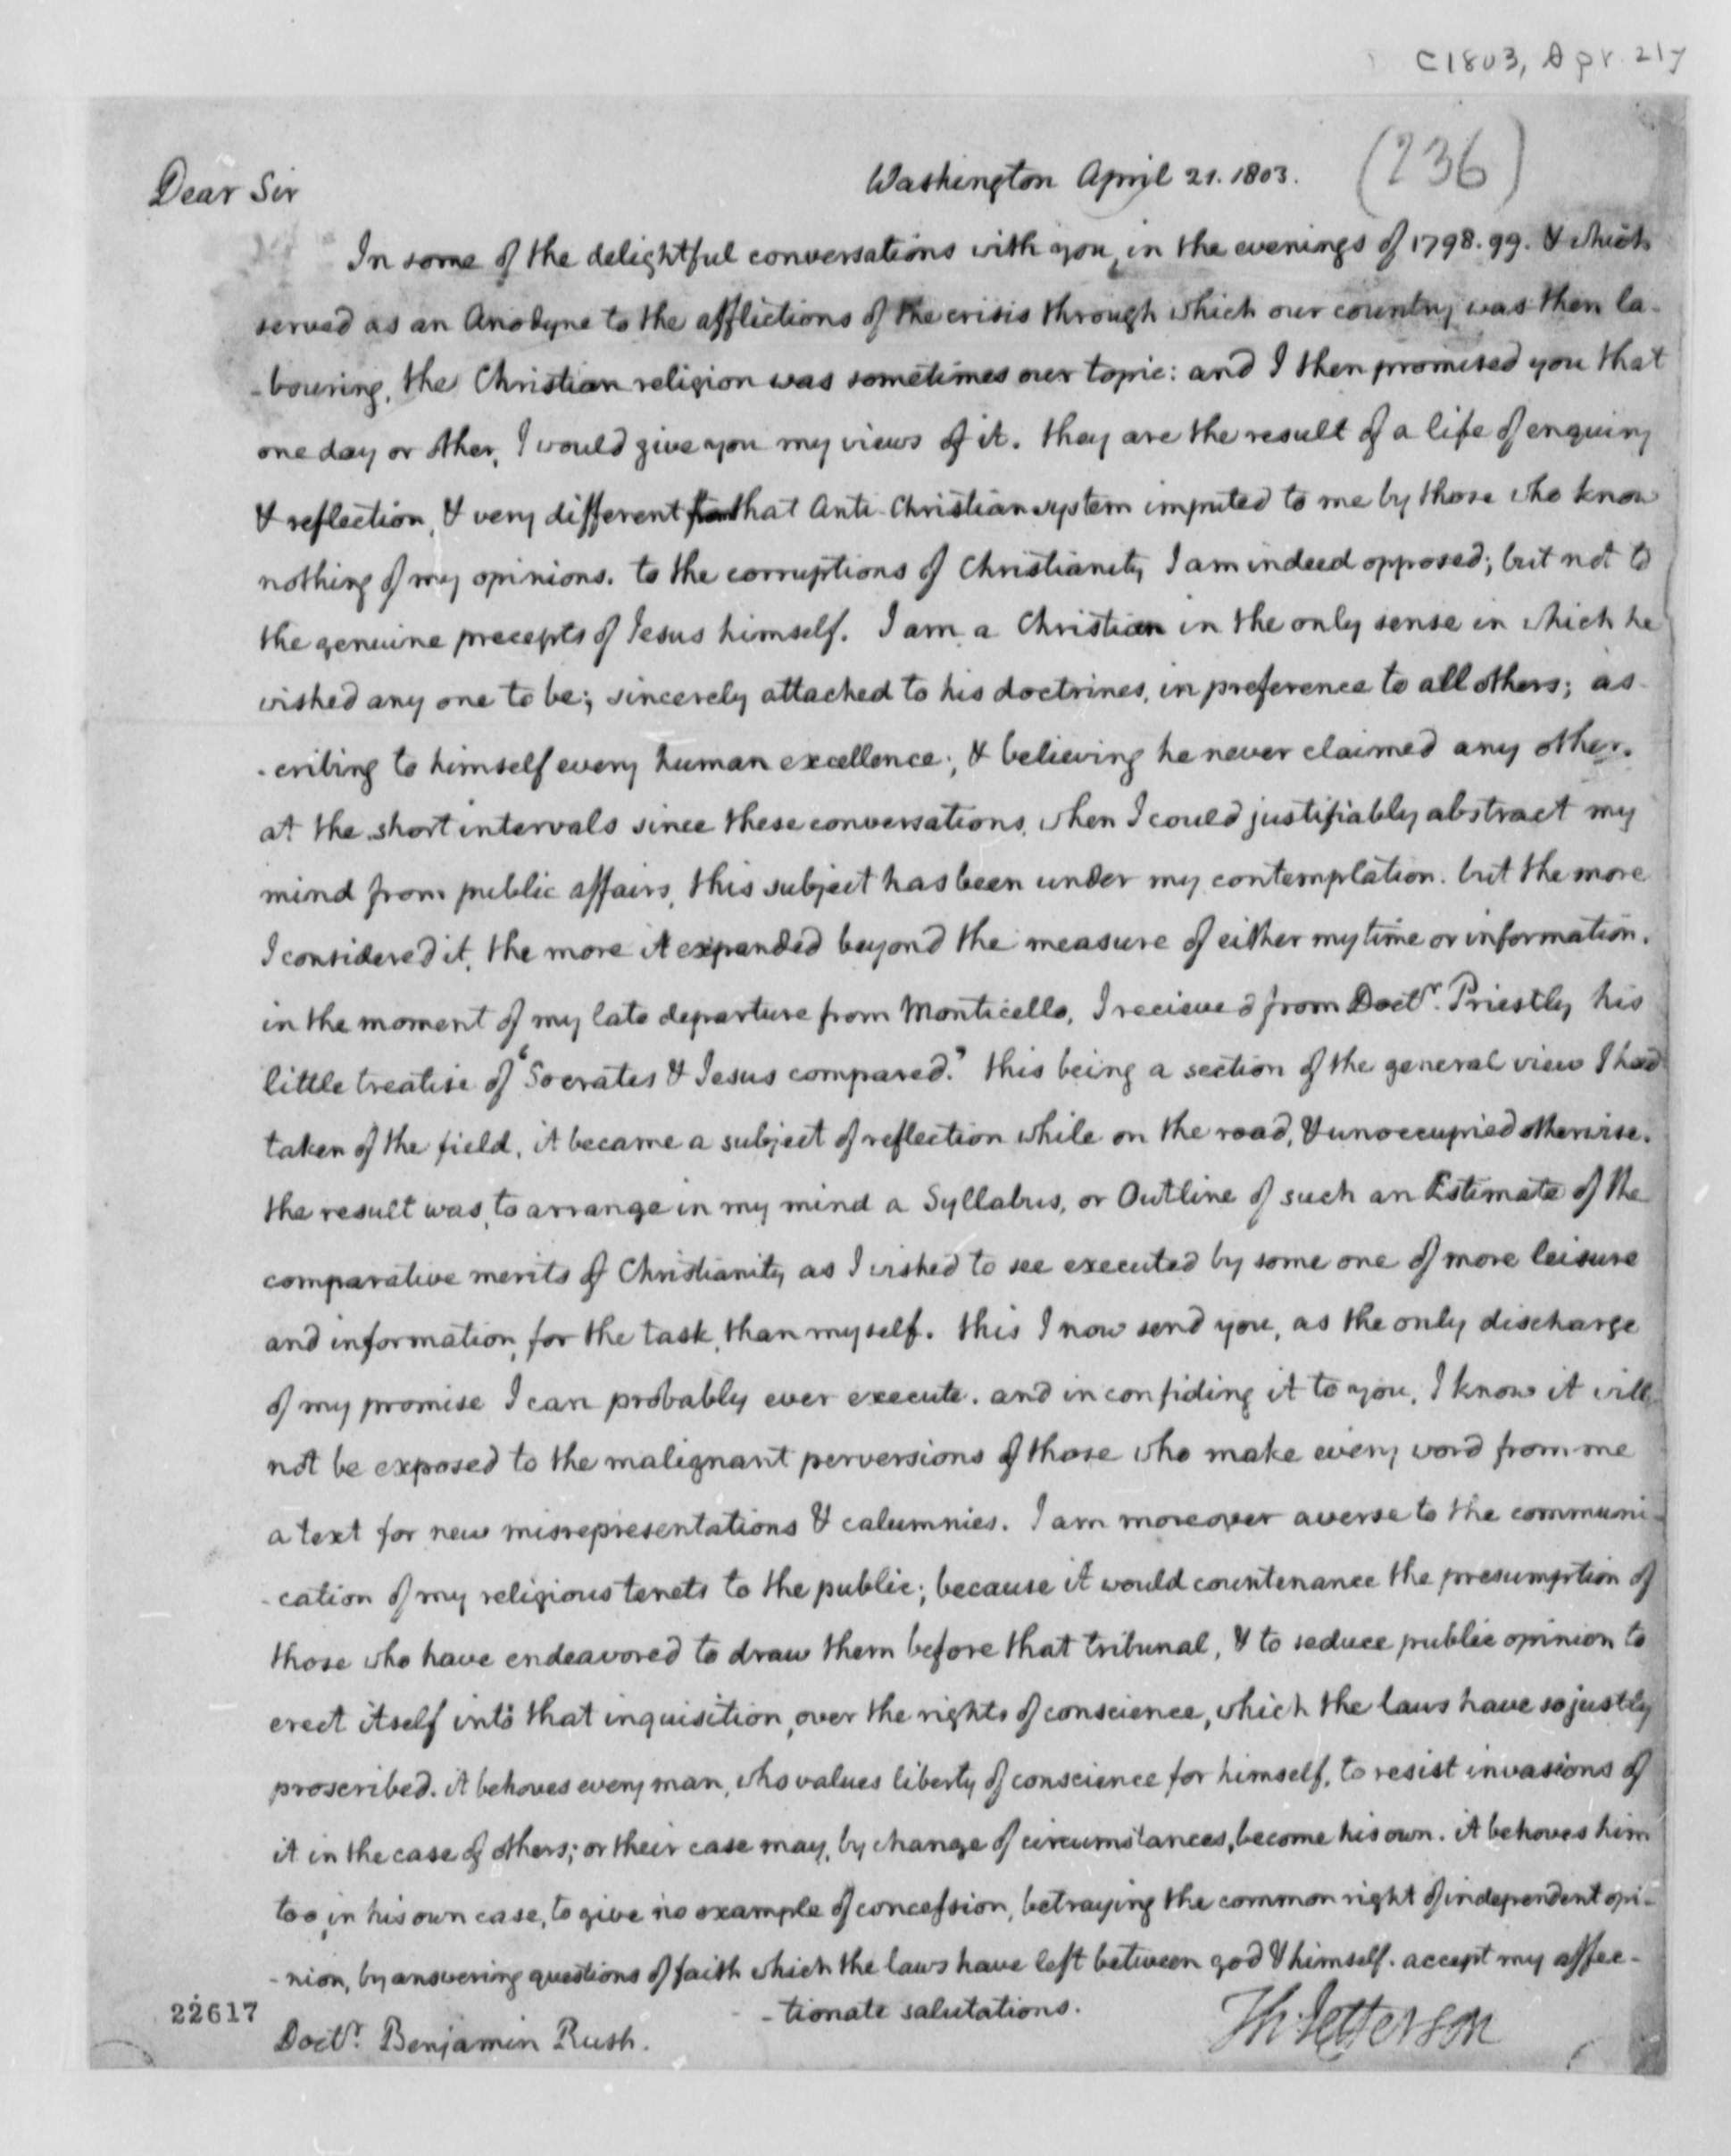 Letter from Thomas Jefferson to Benjamin Rush